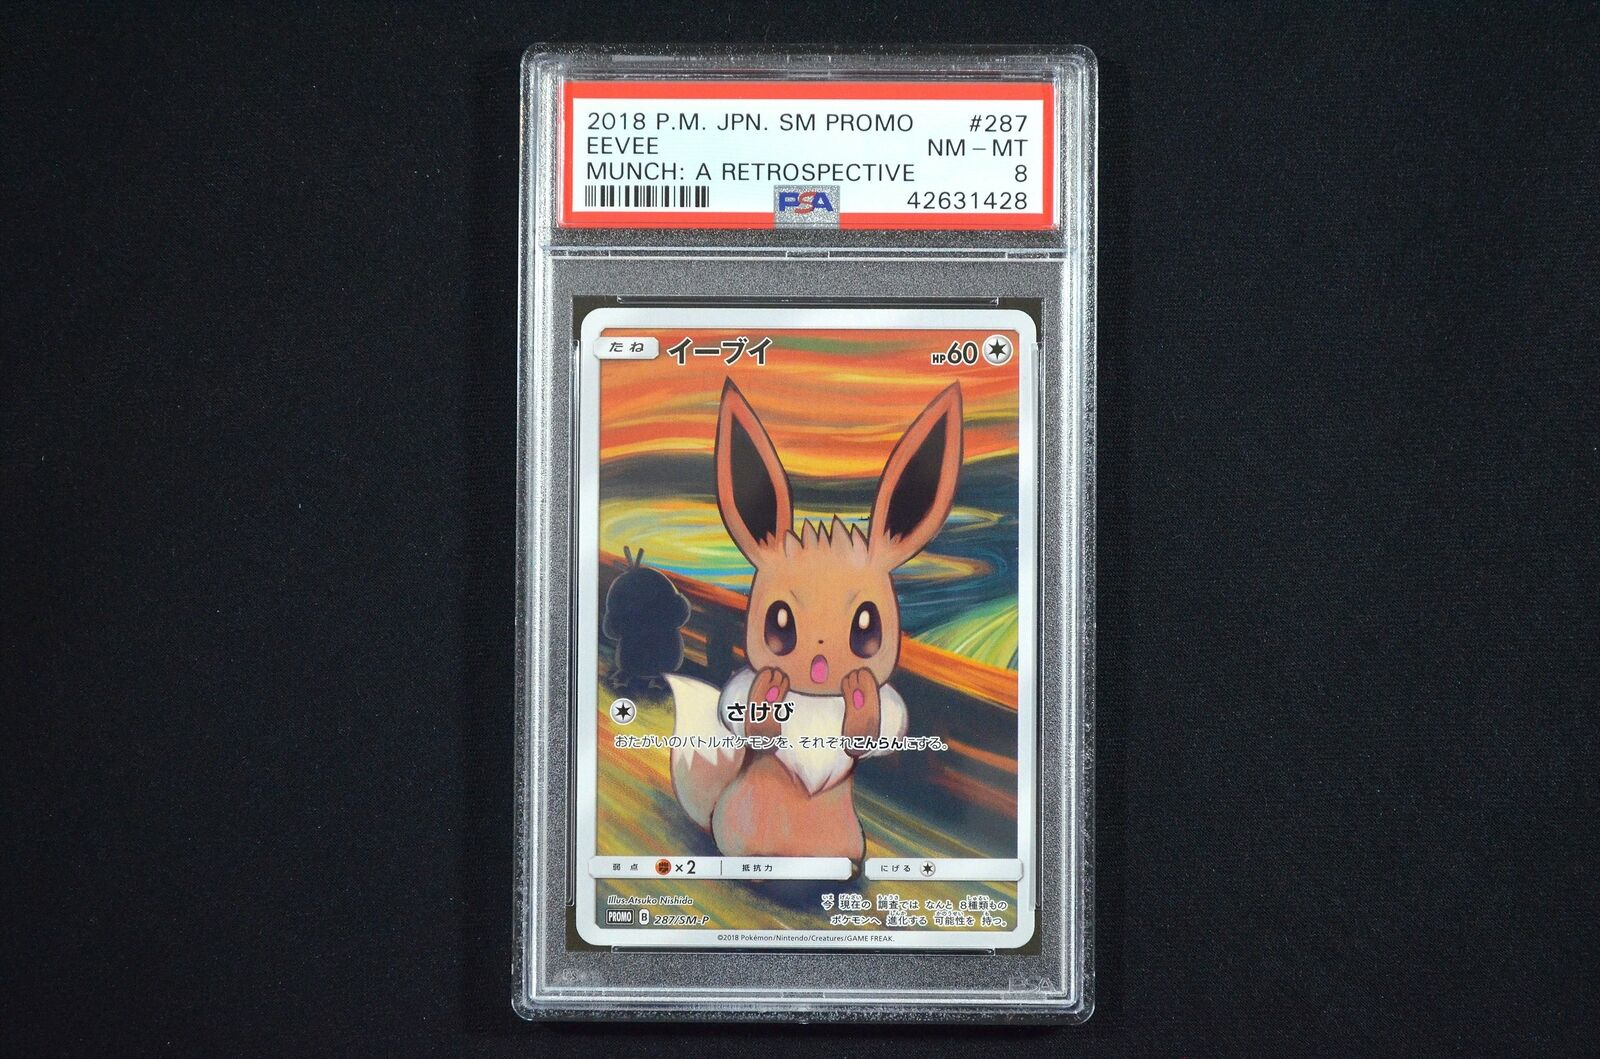 PSA 8 EEVEE SCREAM MUNCH MINT JAPANESE PROMO POKEMON 2018